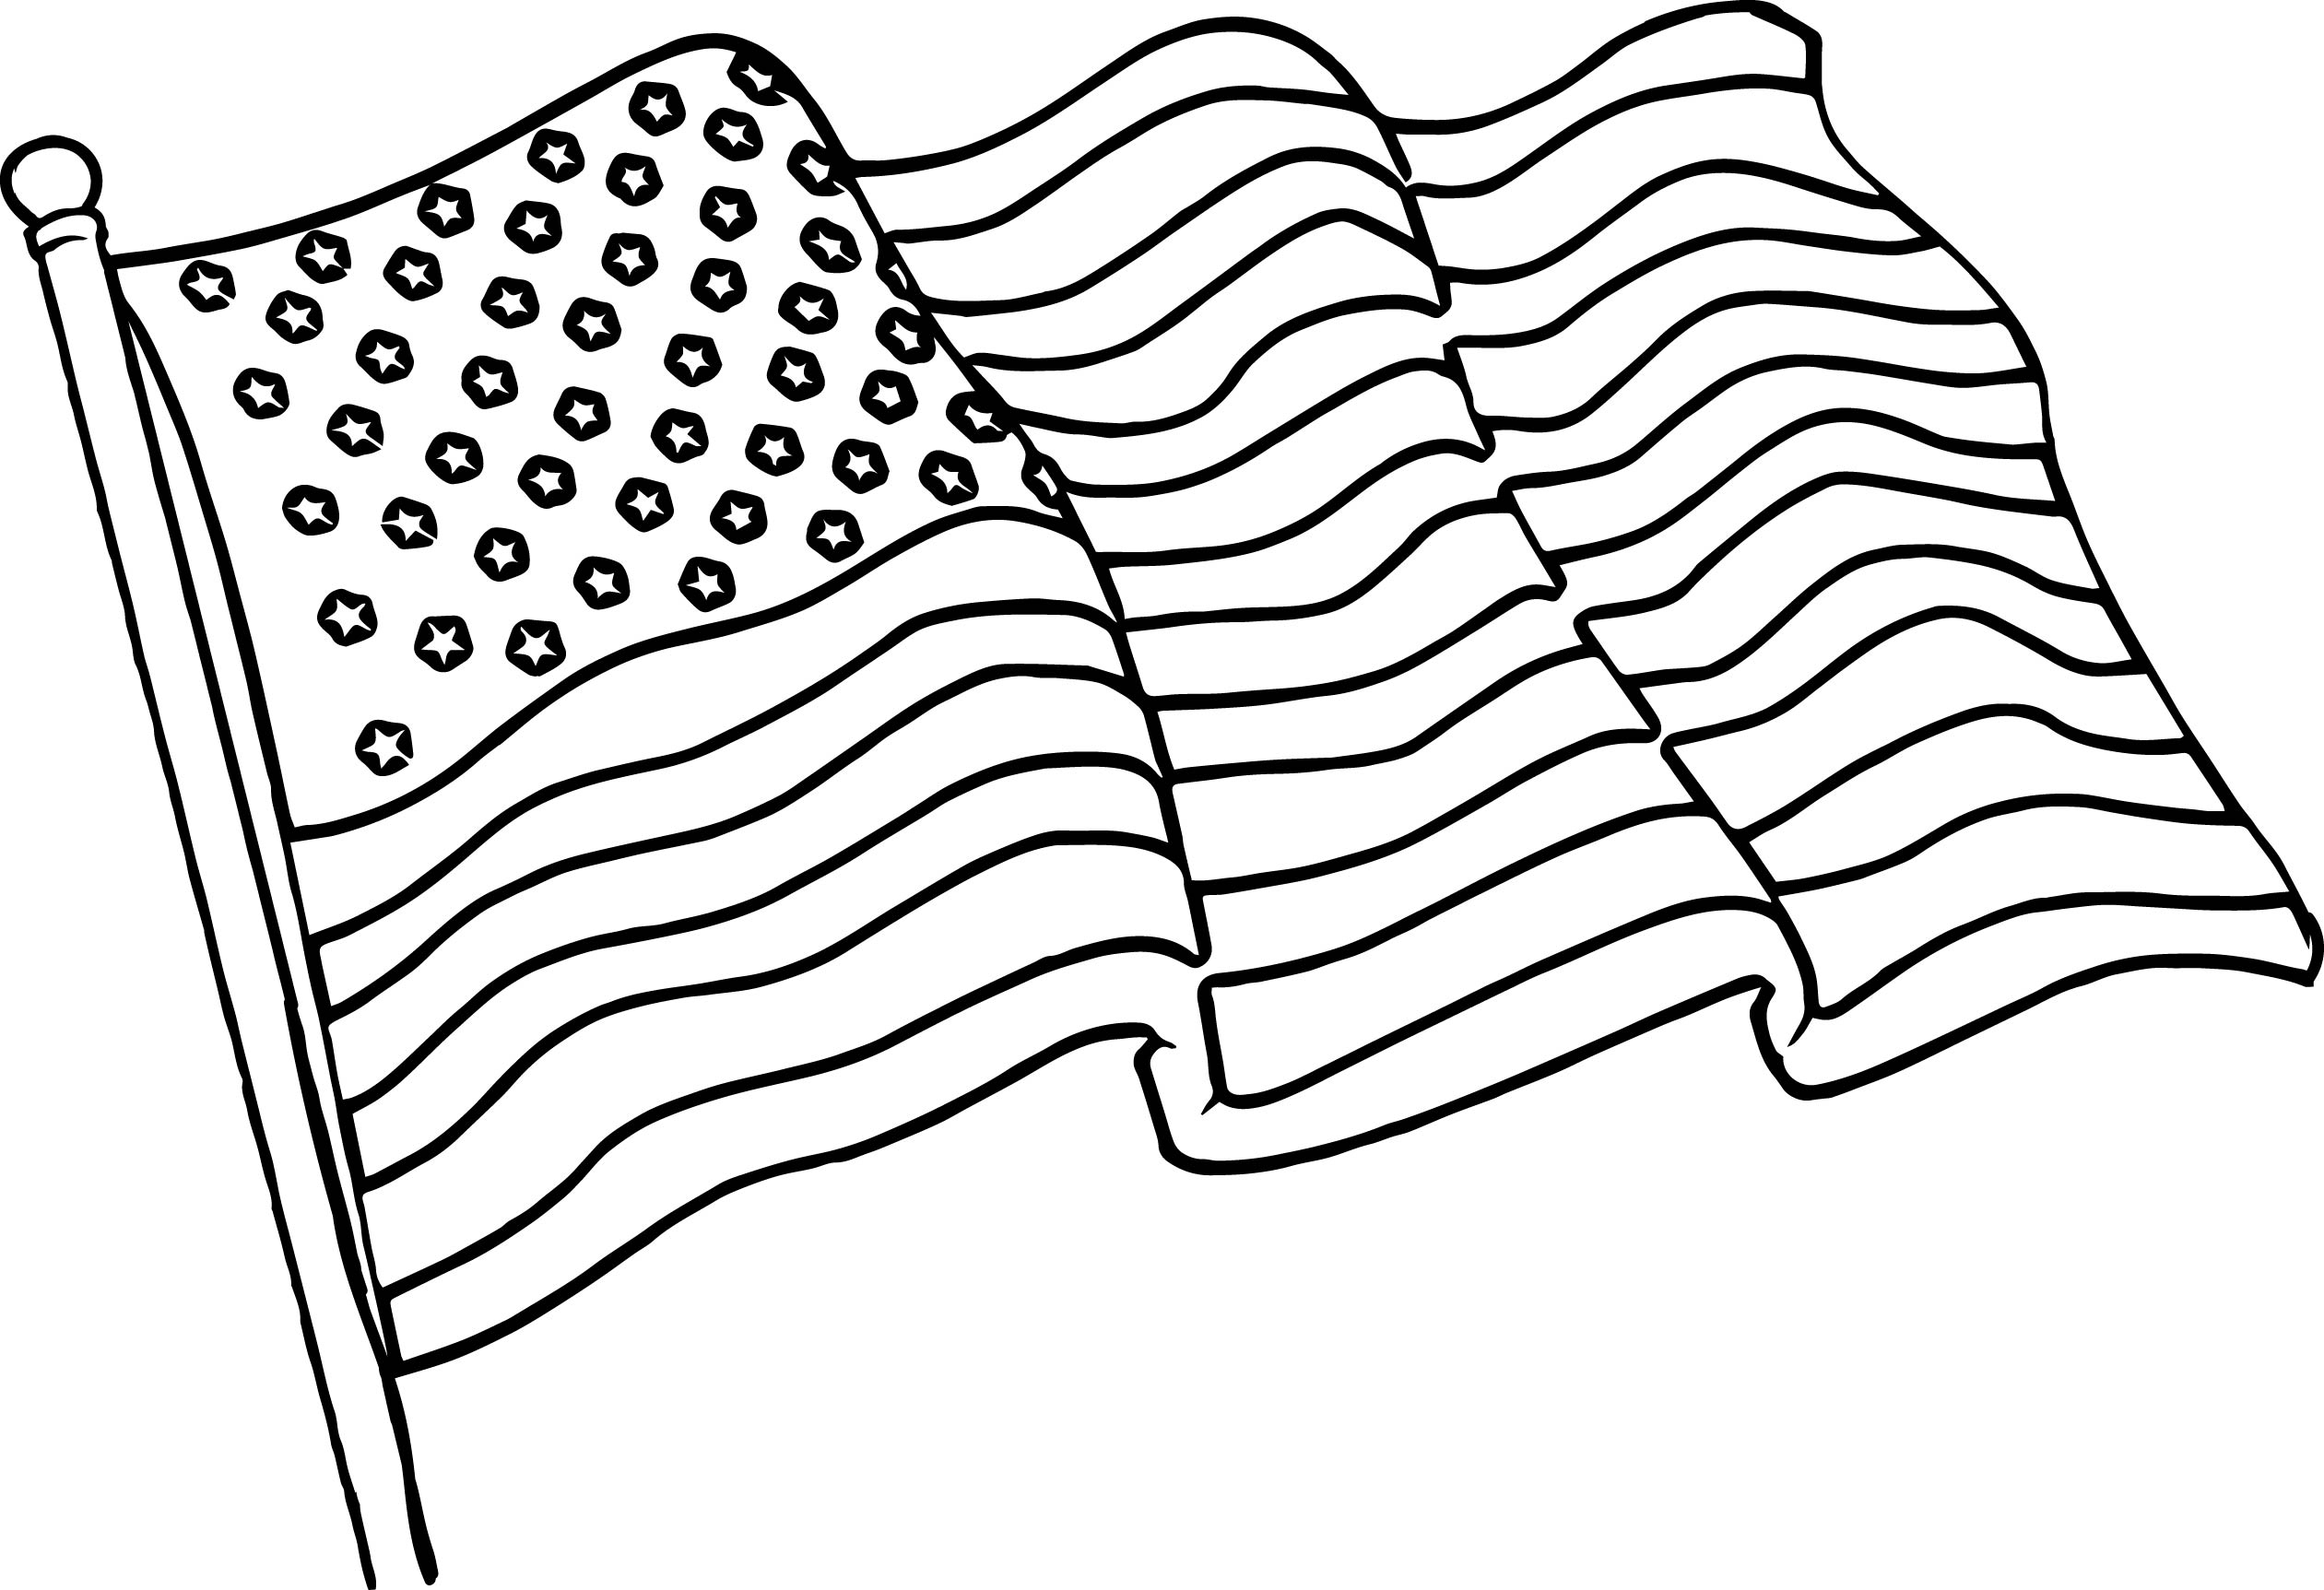 online flag coloring pages - photo#4